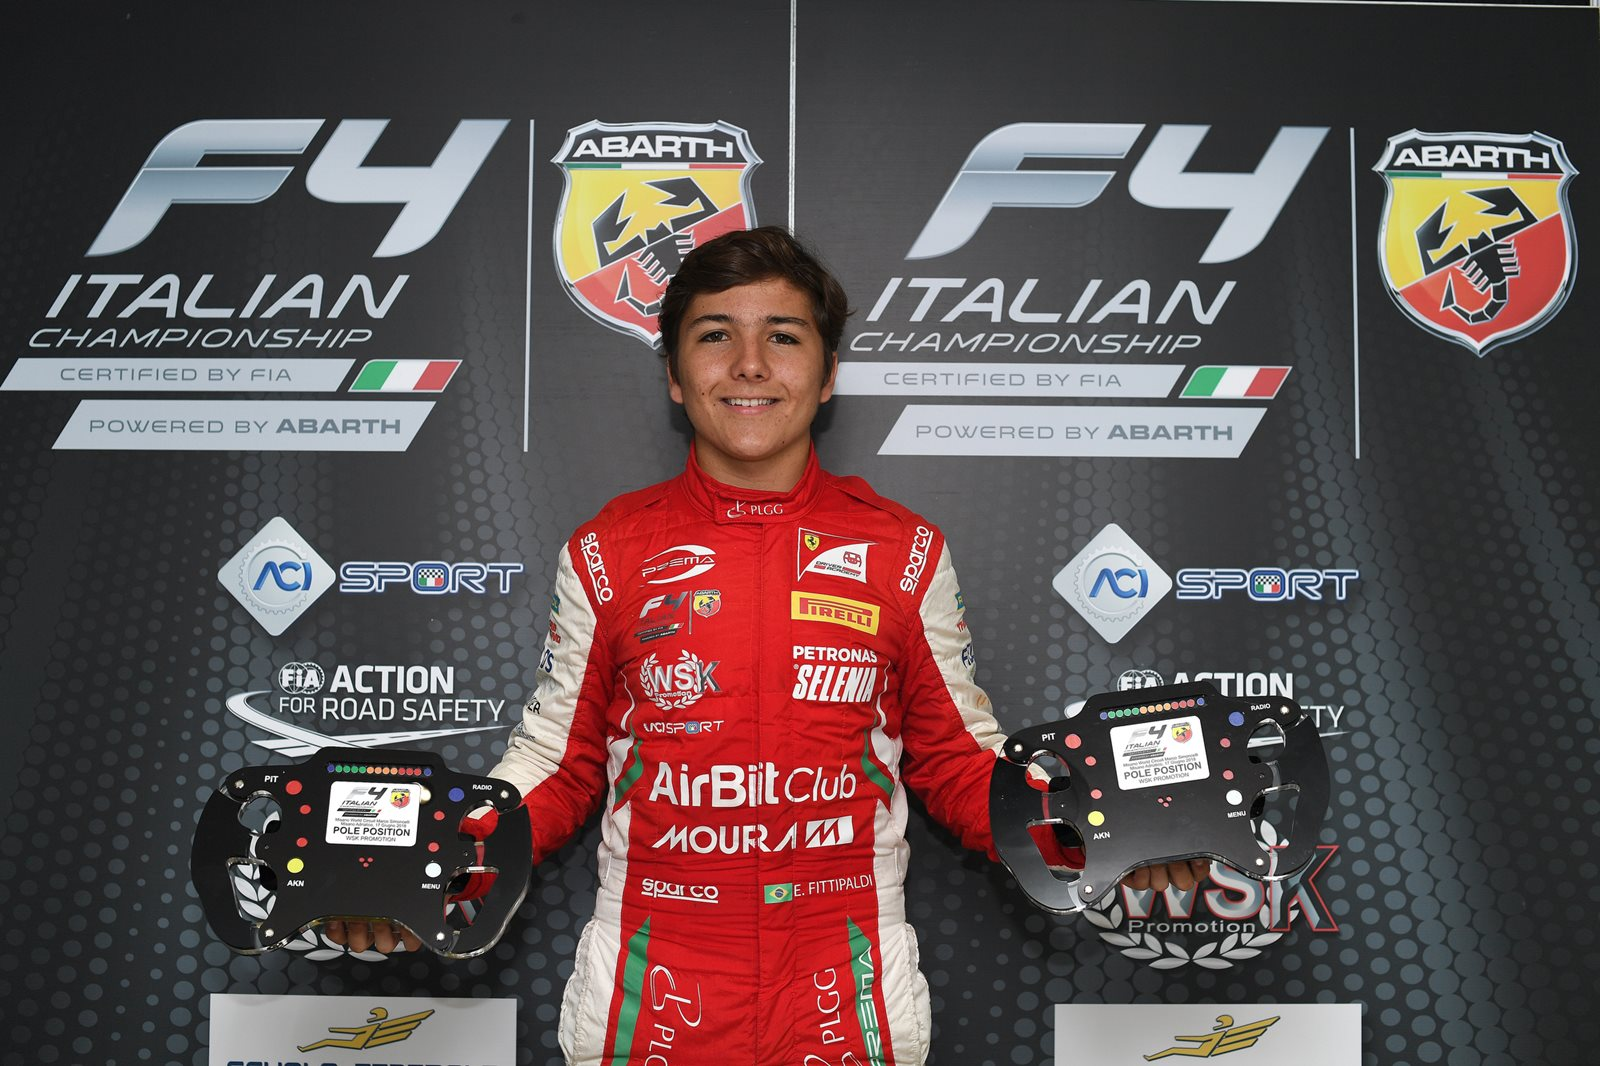 Photo of F4 – Líder da F4 Italiana já com descartes, Enzo Fittipaldi disputa título contra italiano e britânico